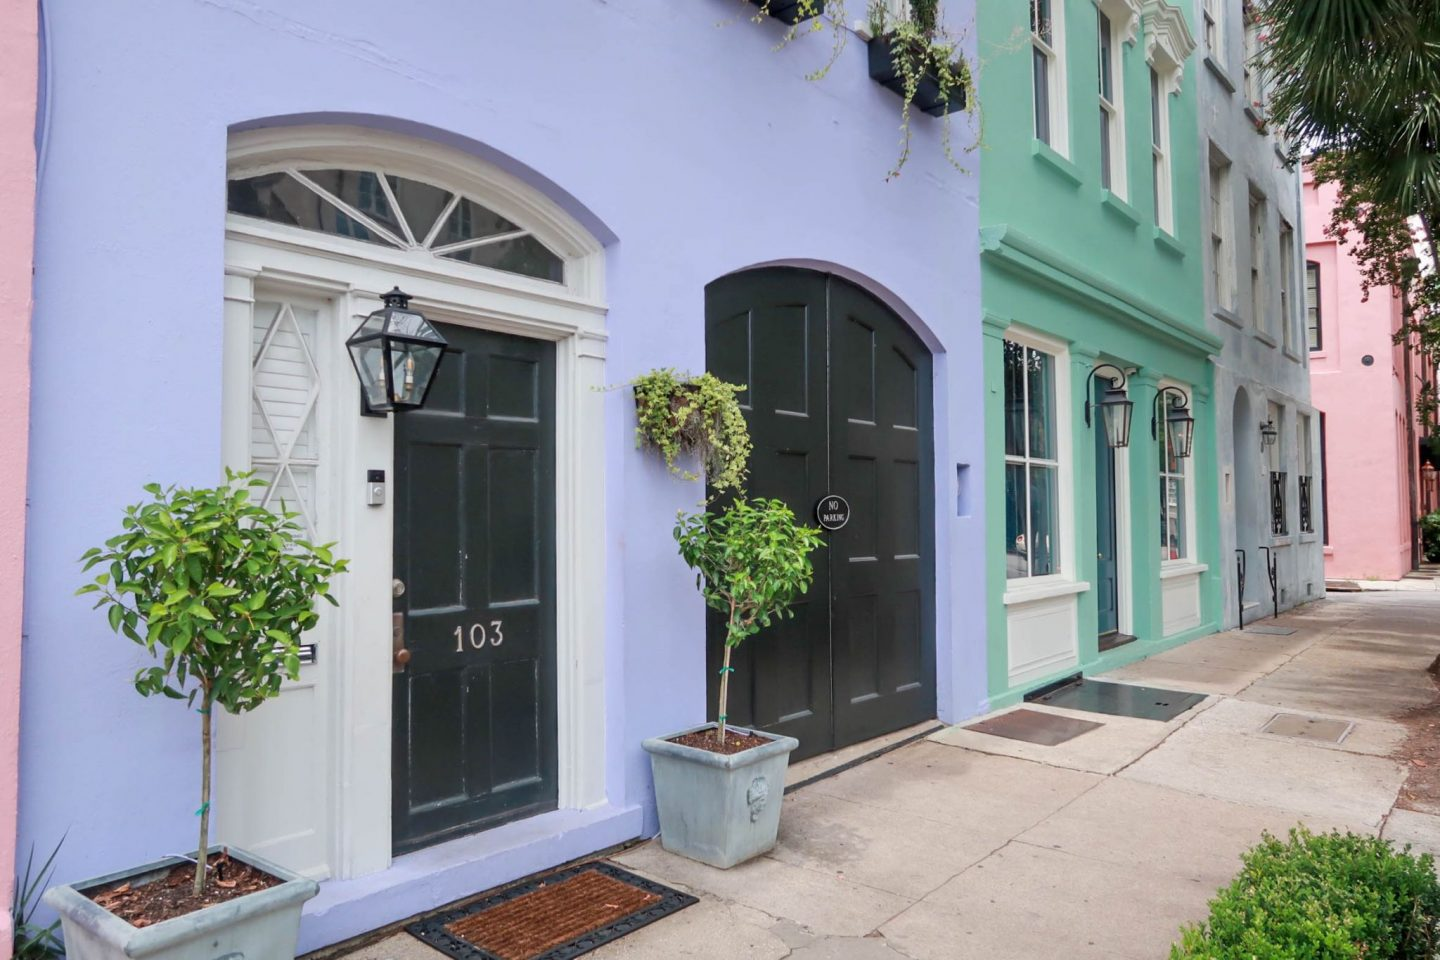 rainbow row - Charleston - Lauren Schwaiger - travel blog